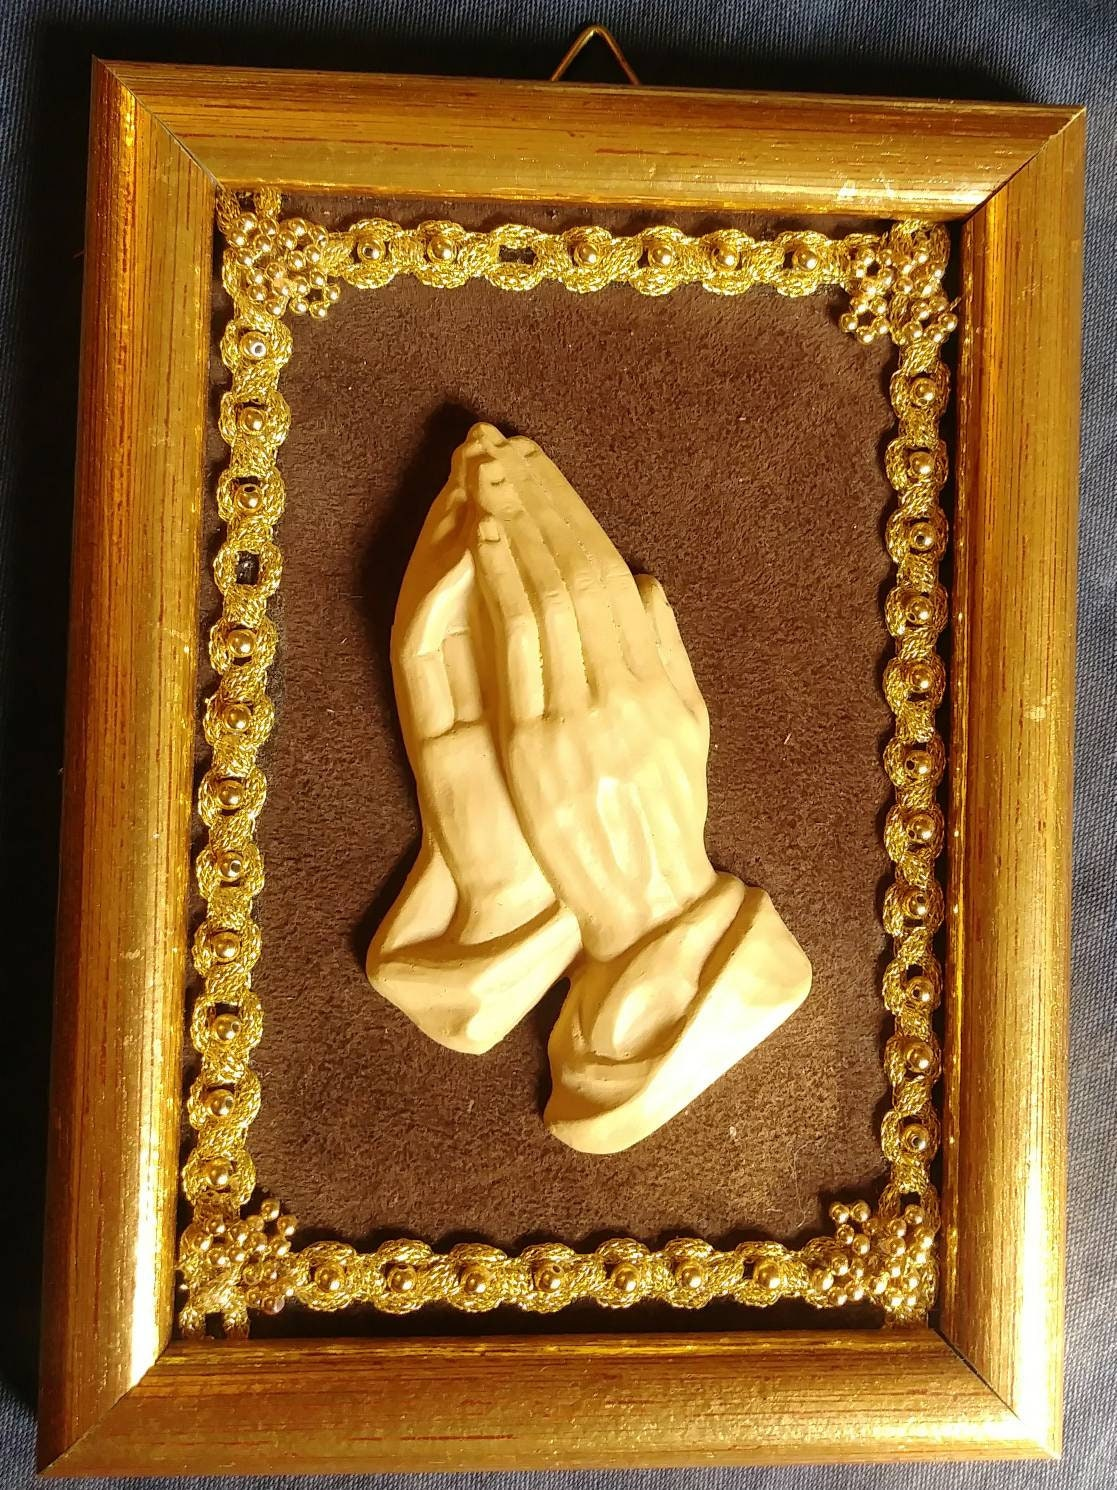 Vintage 1950s German Wall Hanging Praying Hands Religious   Etsy